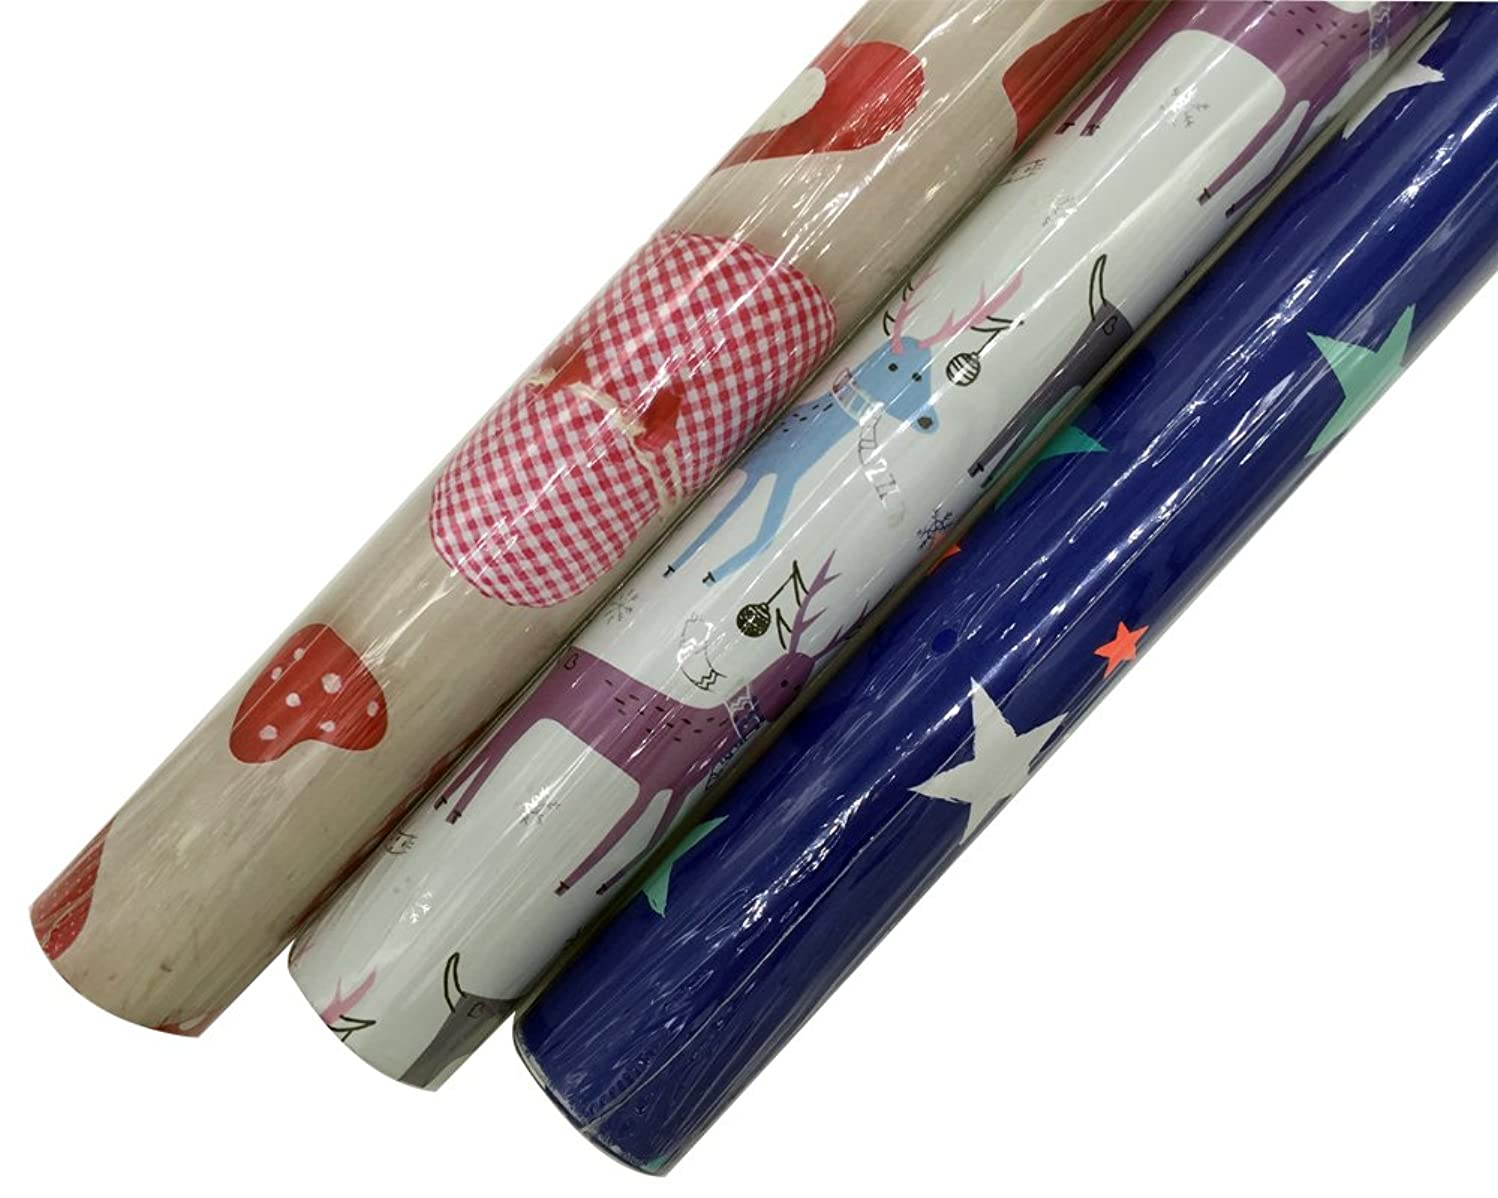 Gift Wrapping Paper Rolls?For Birthday, Holiday, Christmas, Wedding, Anniversary, Baby Shower - 3 Rolls - Multiple Patterns - 30